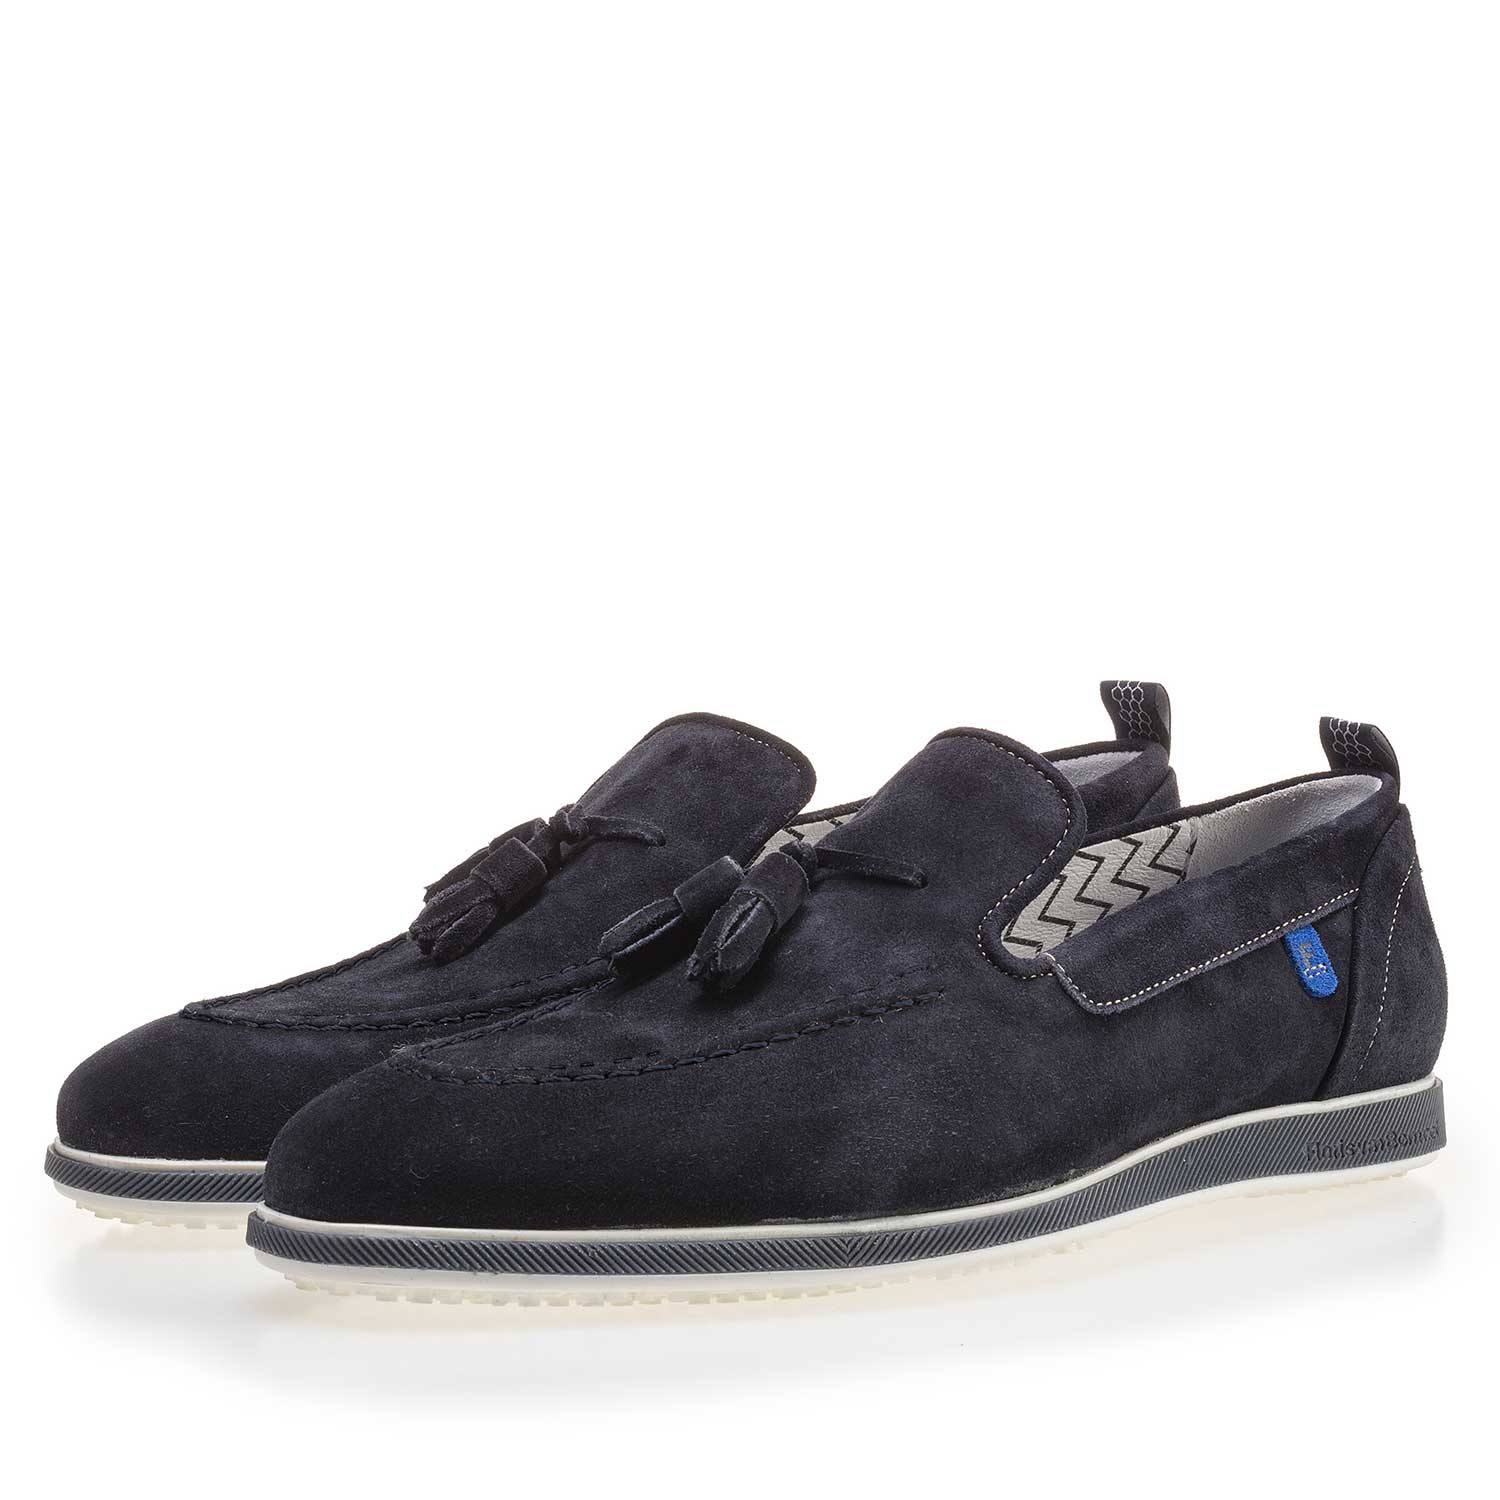 11127/00 - Dark blue suede leather loafer